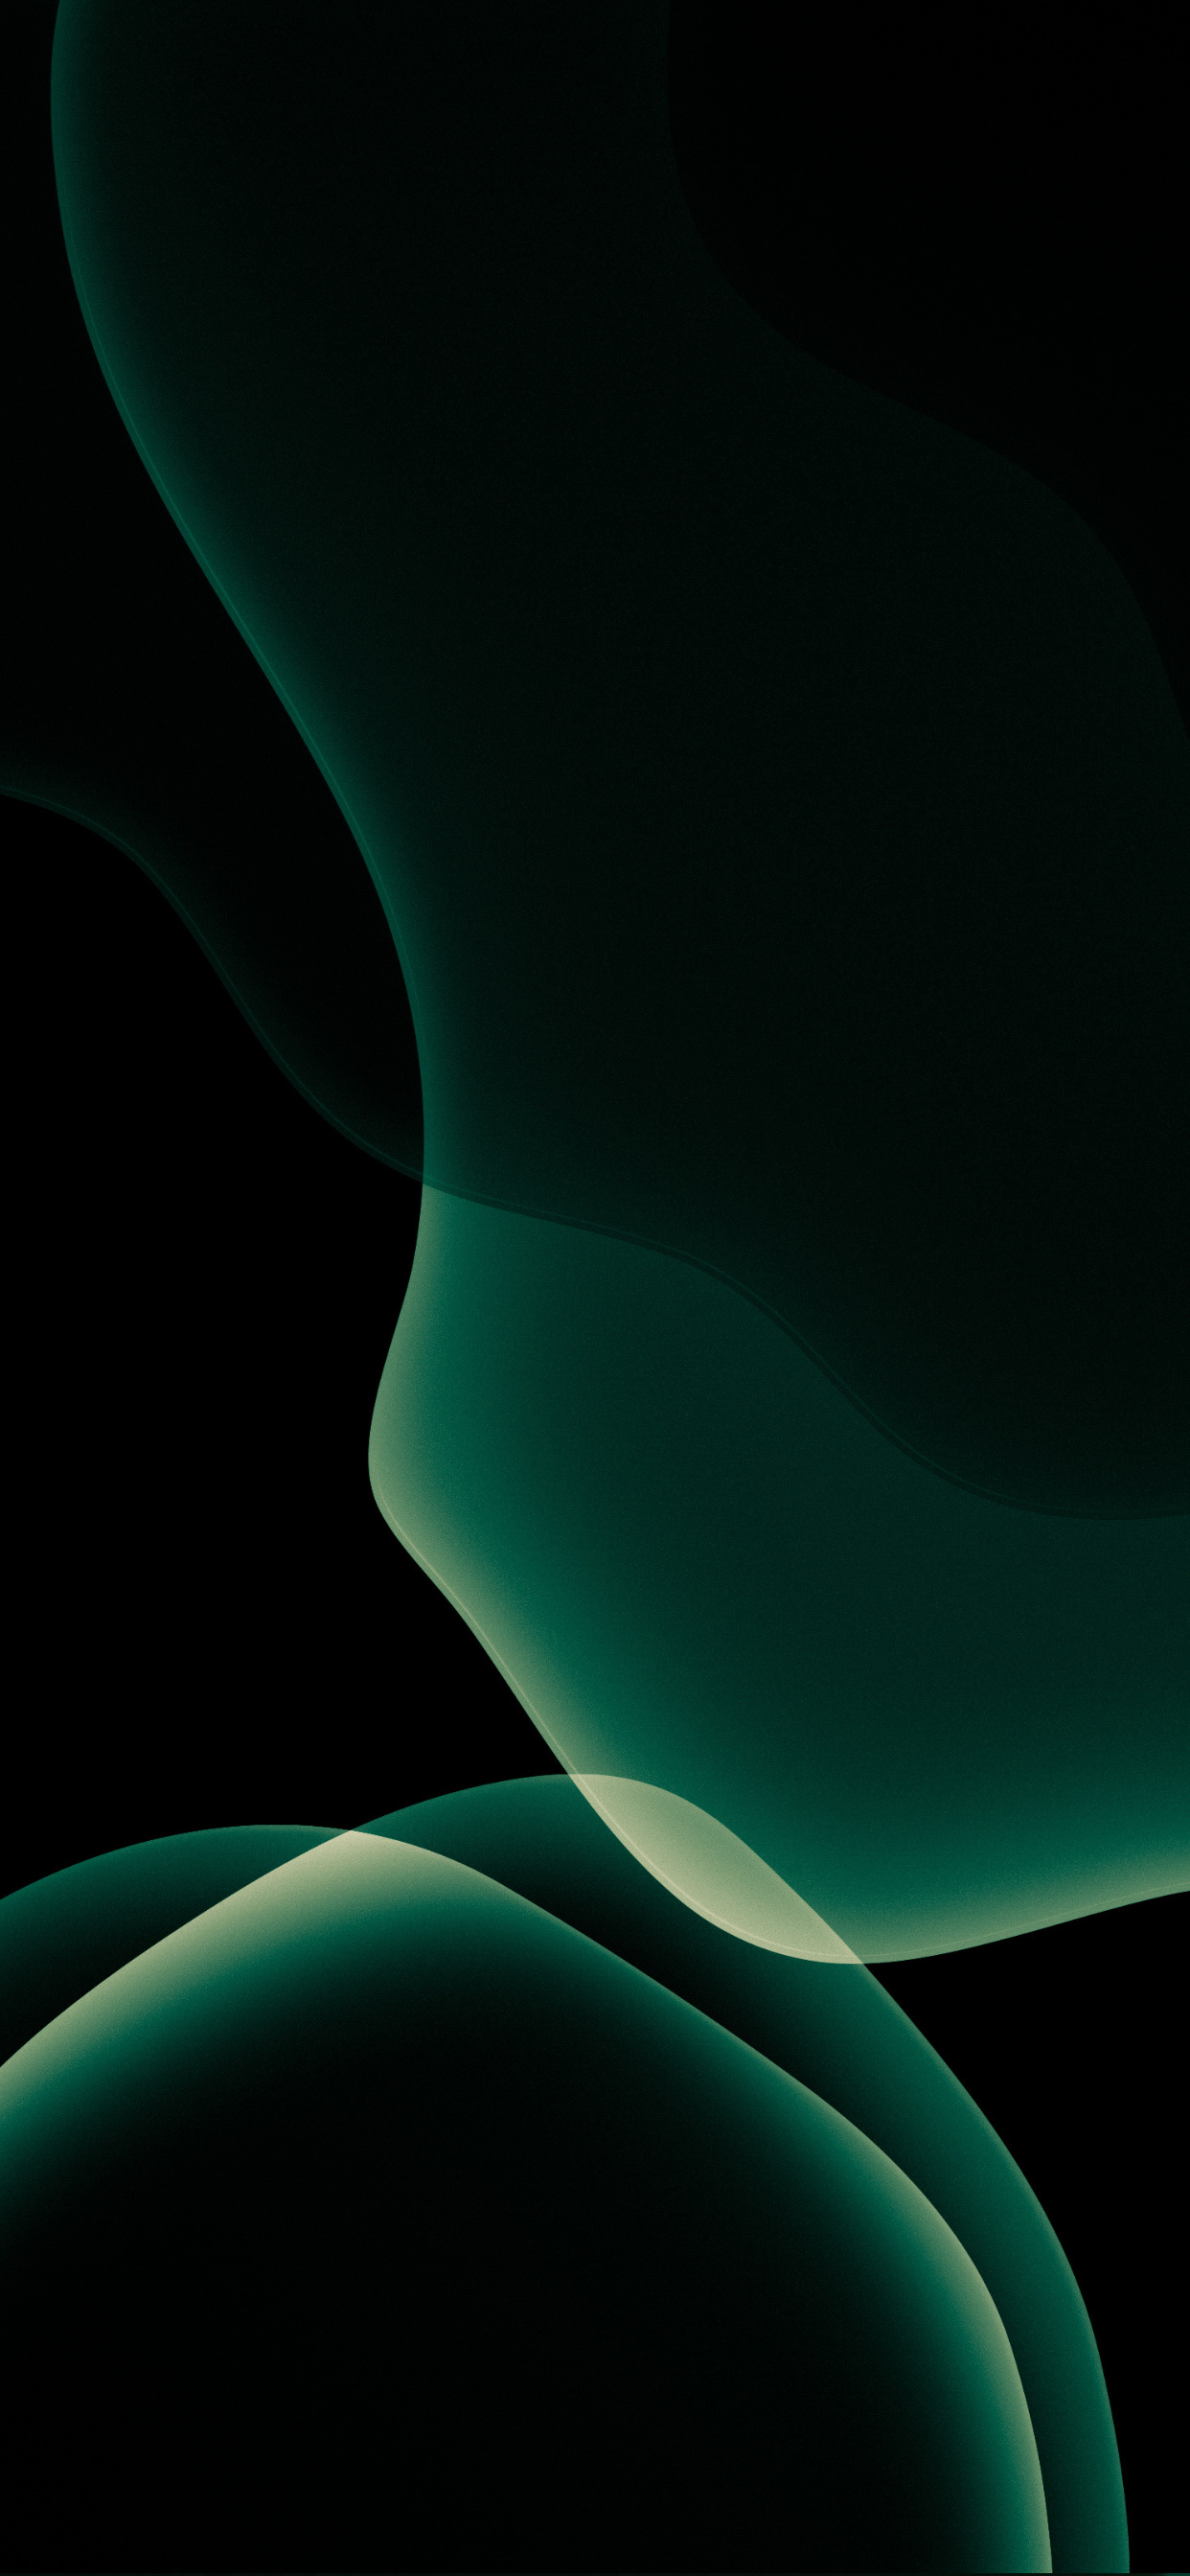 Midnight Green wallpapers 1242x2688